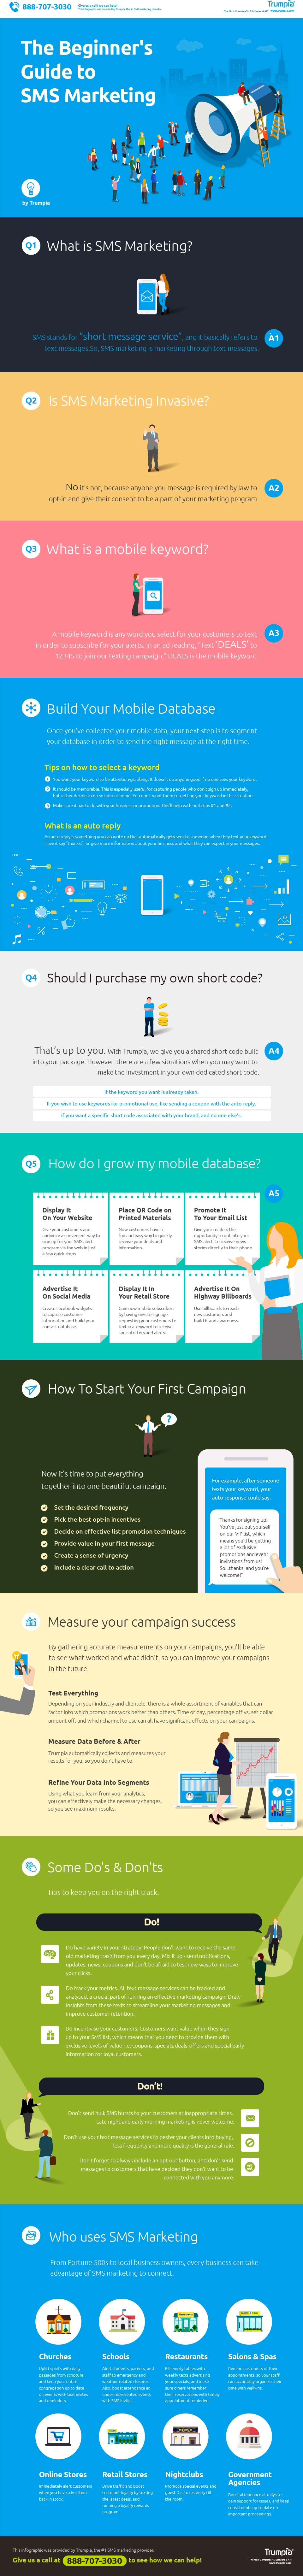 Infographic For Beginner's Guide to SMS Marketing